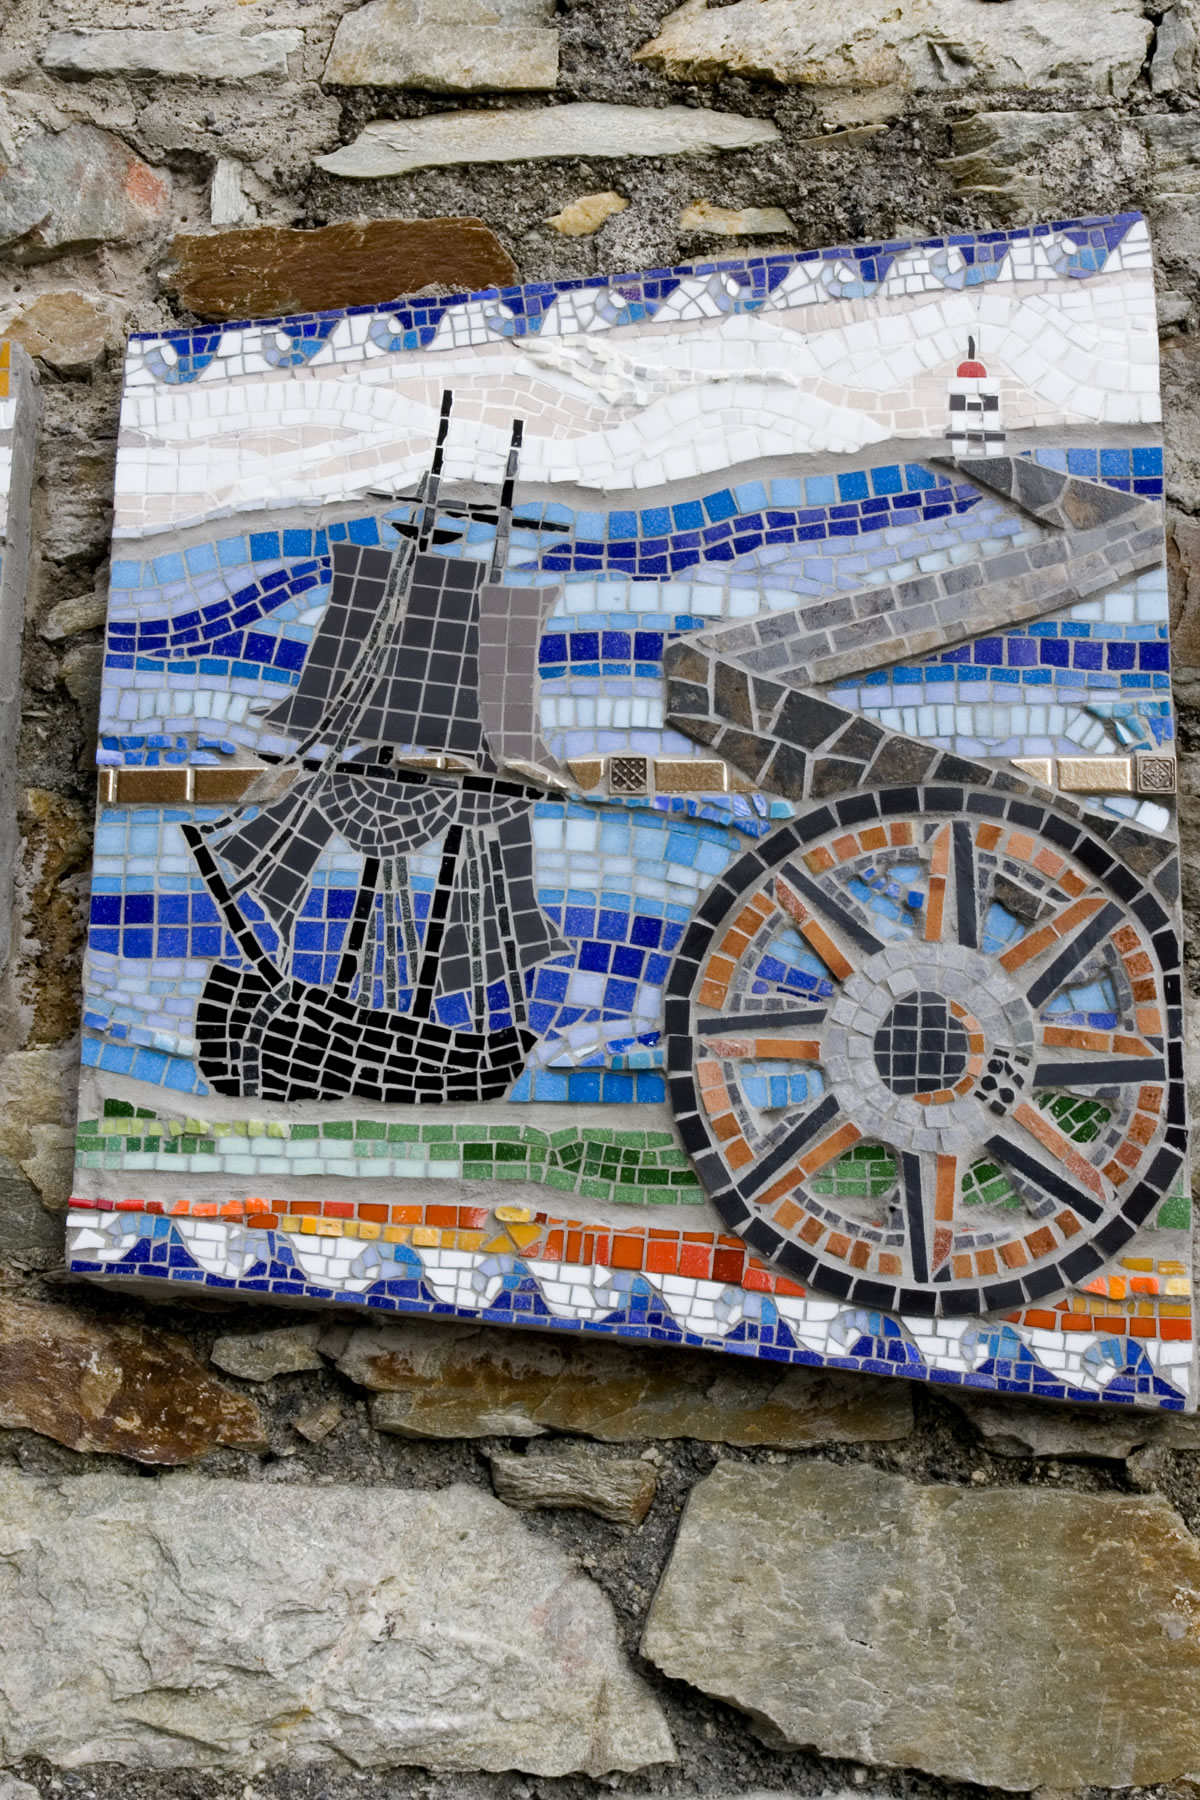 Timeline - p  anel 3. Depicting the maritime history and industry, Holyhead breakwater and lighthouse.   Elements of air, water and fire stream through the design along a bronze timeline. Border of tidal waves.